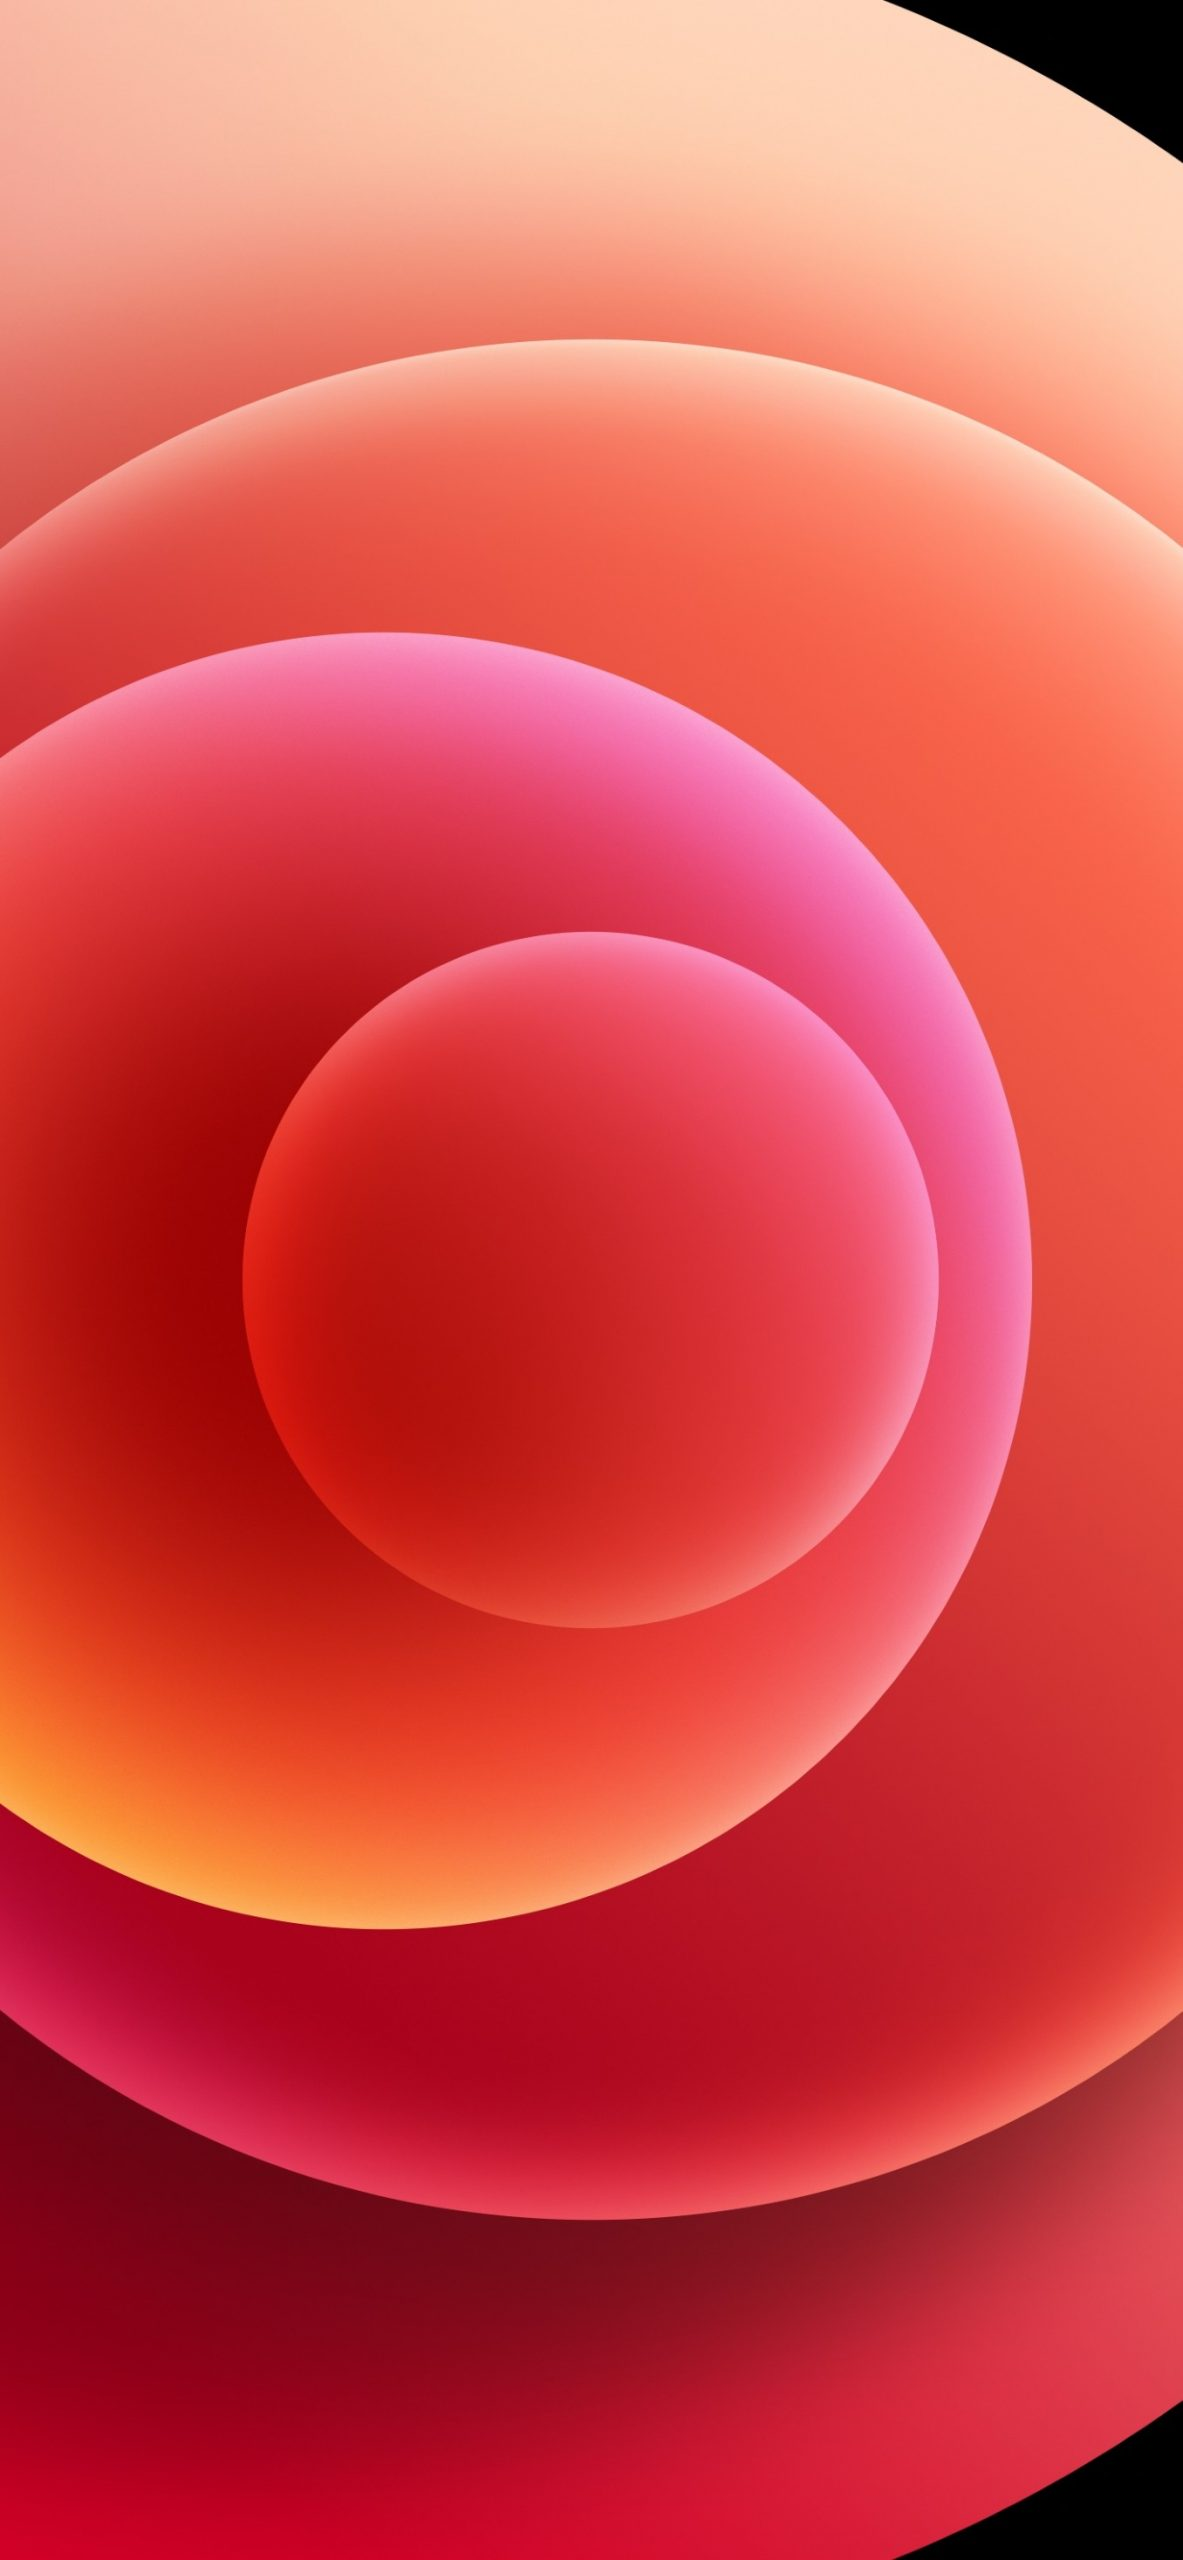 iphone 12 orb red light scaled